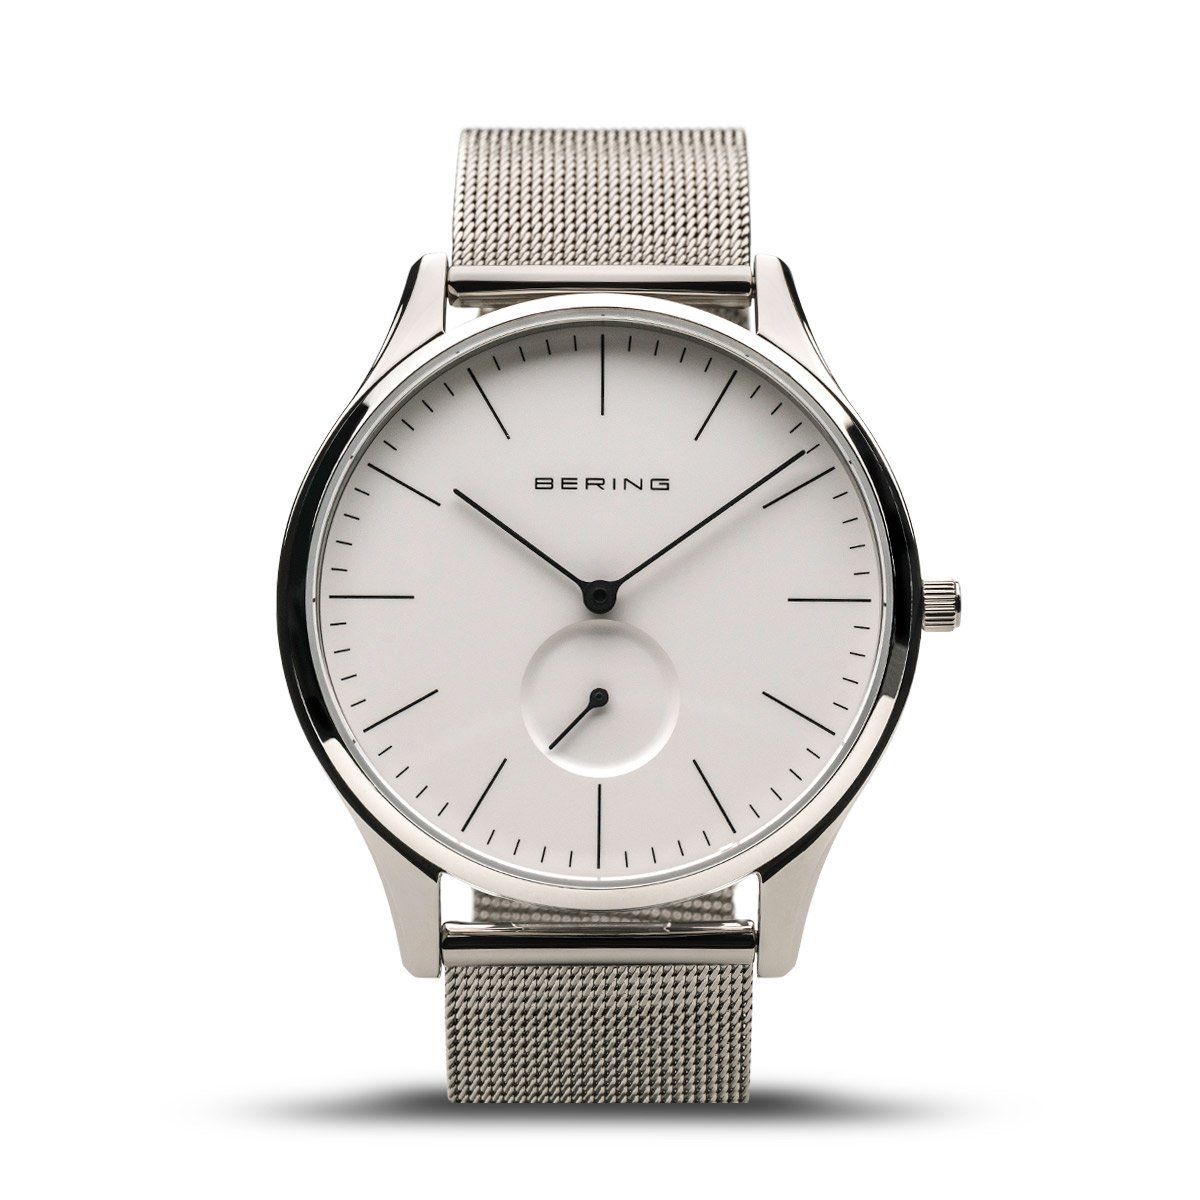 Men's Classic Bering Watch 16641-004 Watches Bering